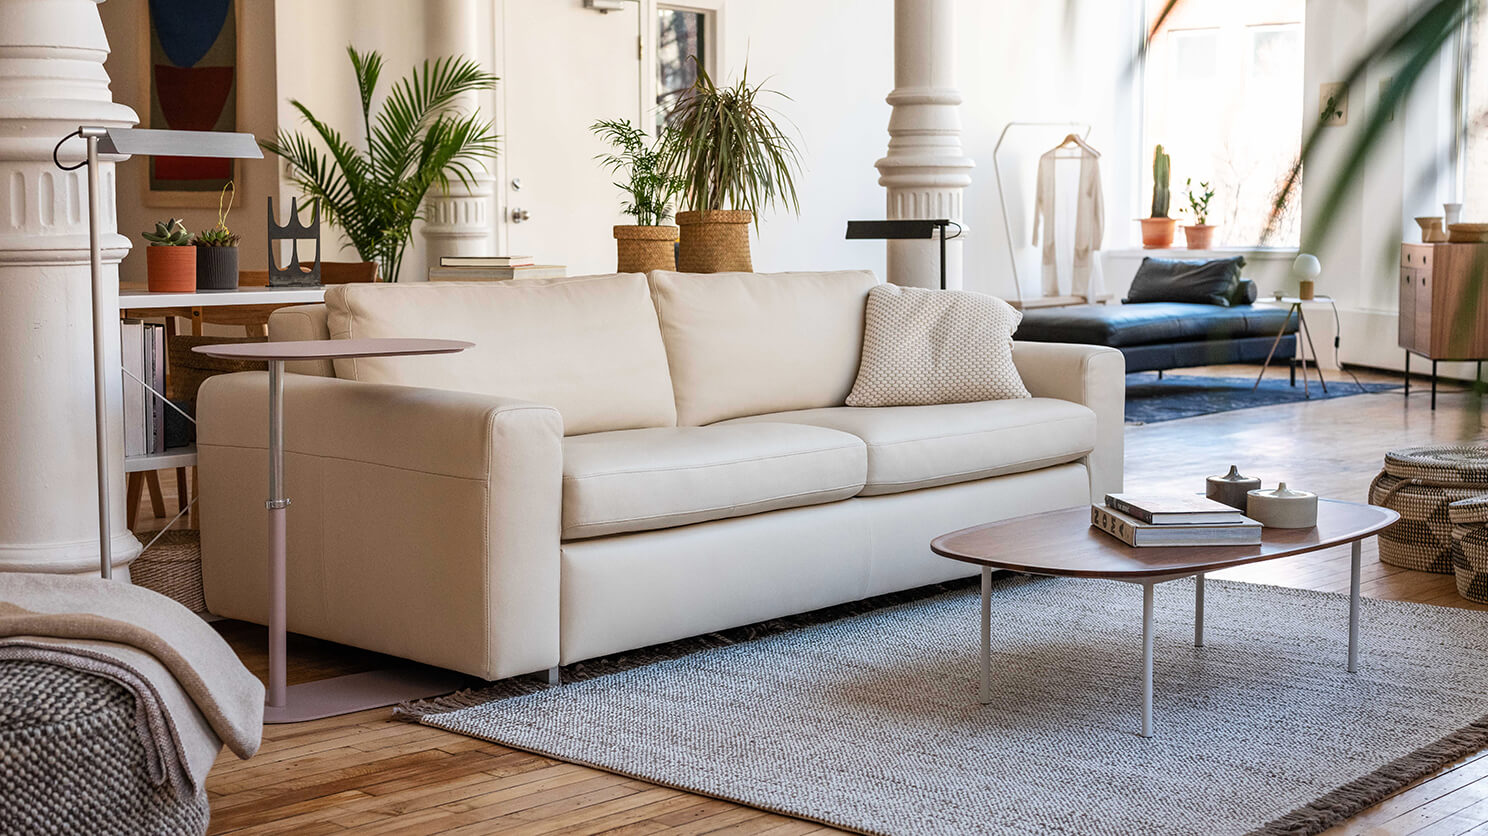 Reeva Sofa Bed - Full Size Mattress - Leather — M Collection Home